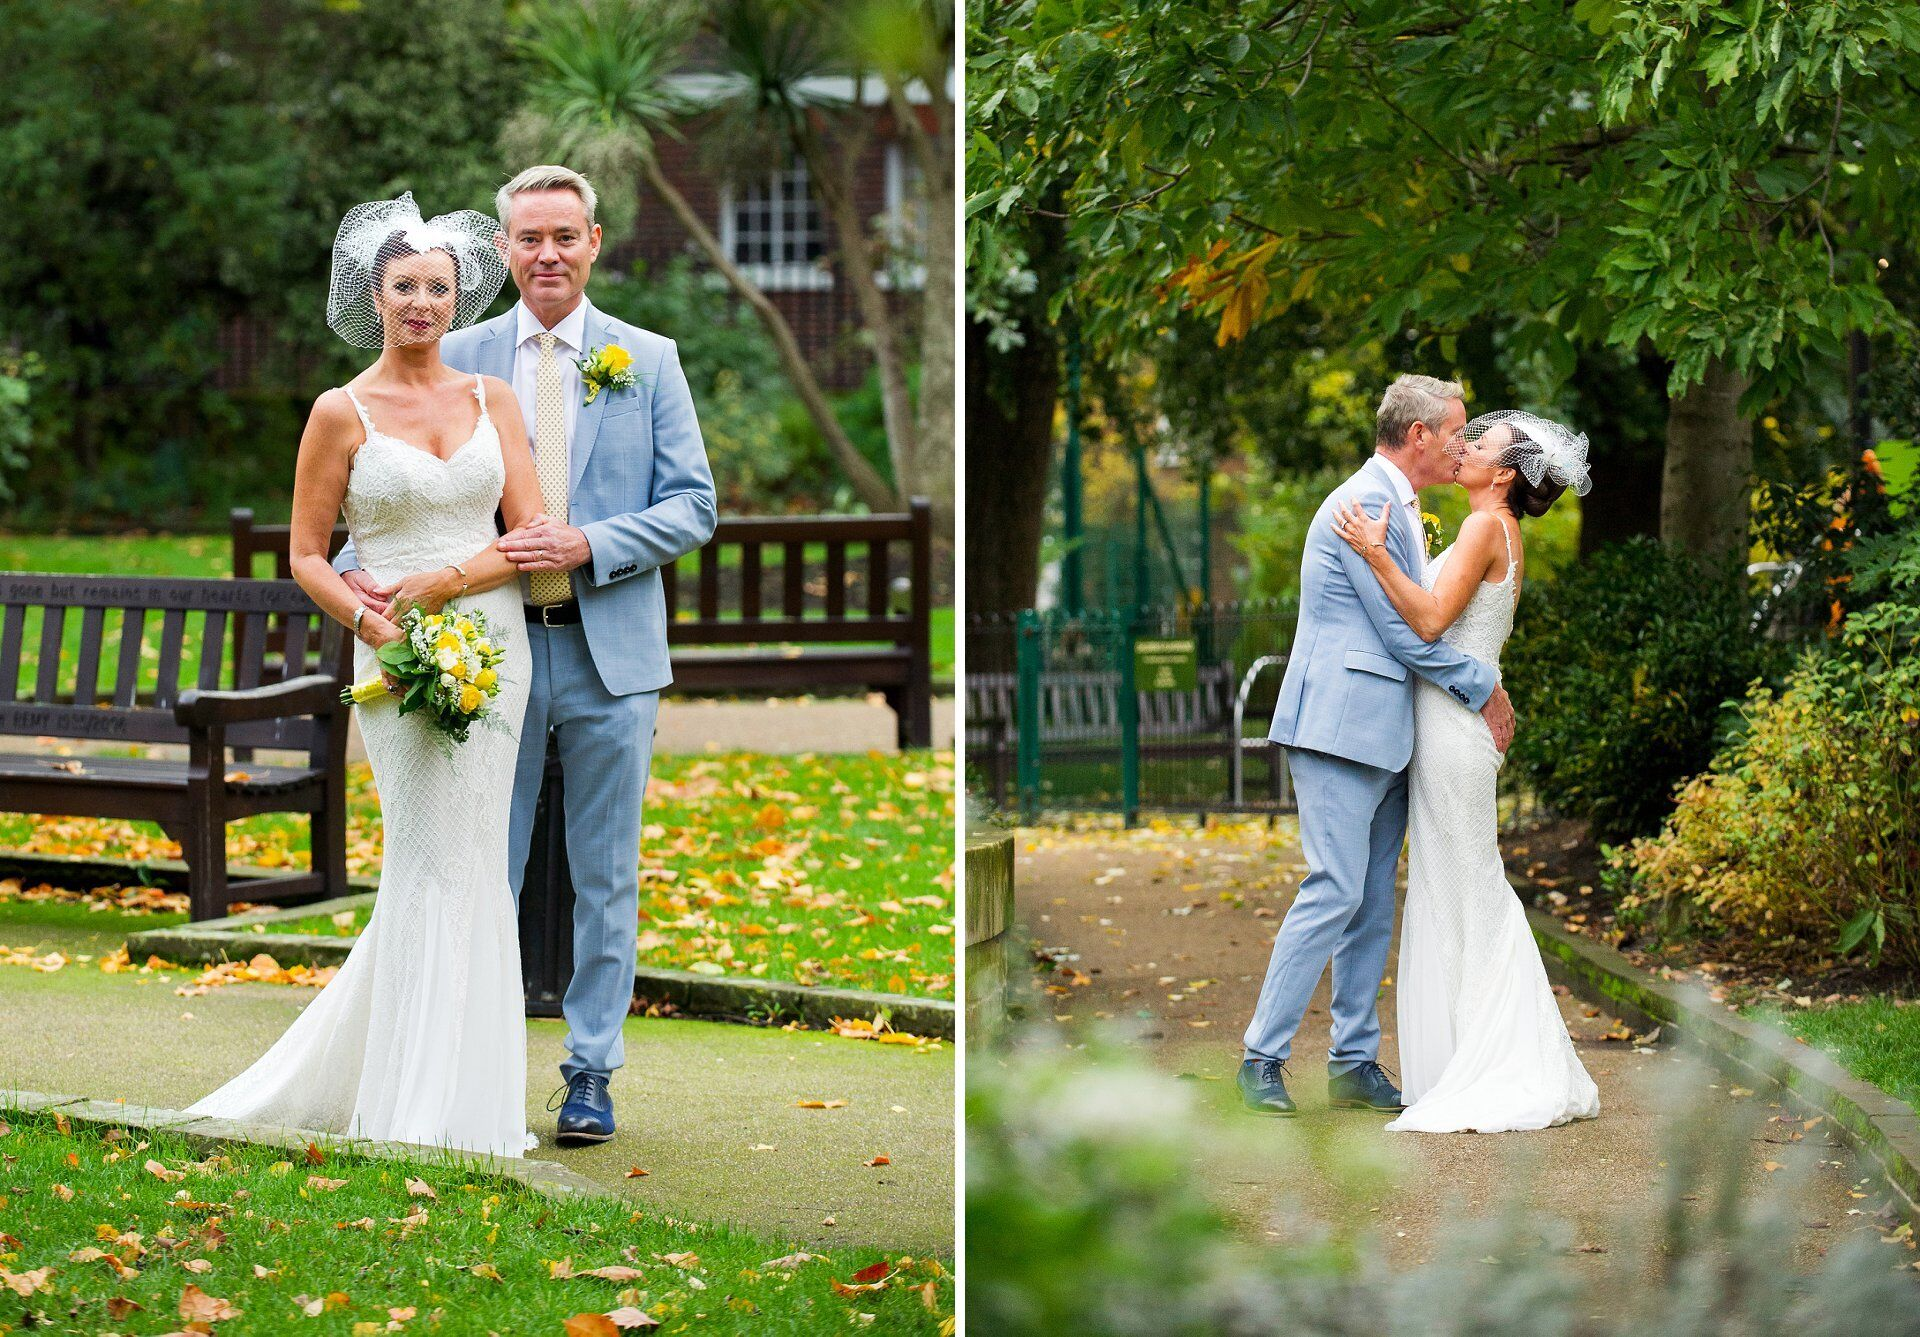 Ivy Chelsea Garden wedding photographer couple photos in nearby St Luke's Gardens